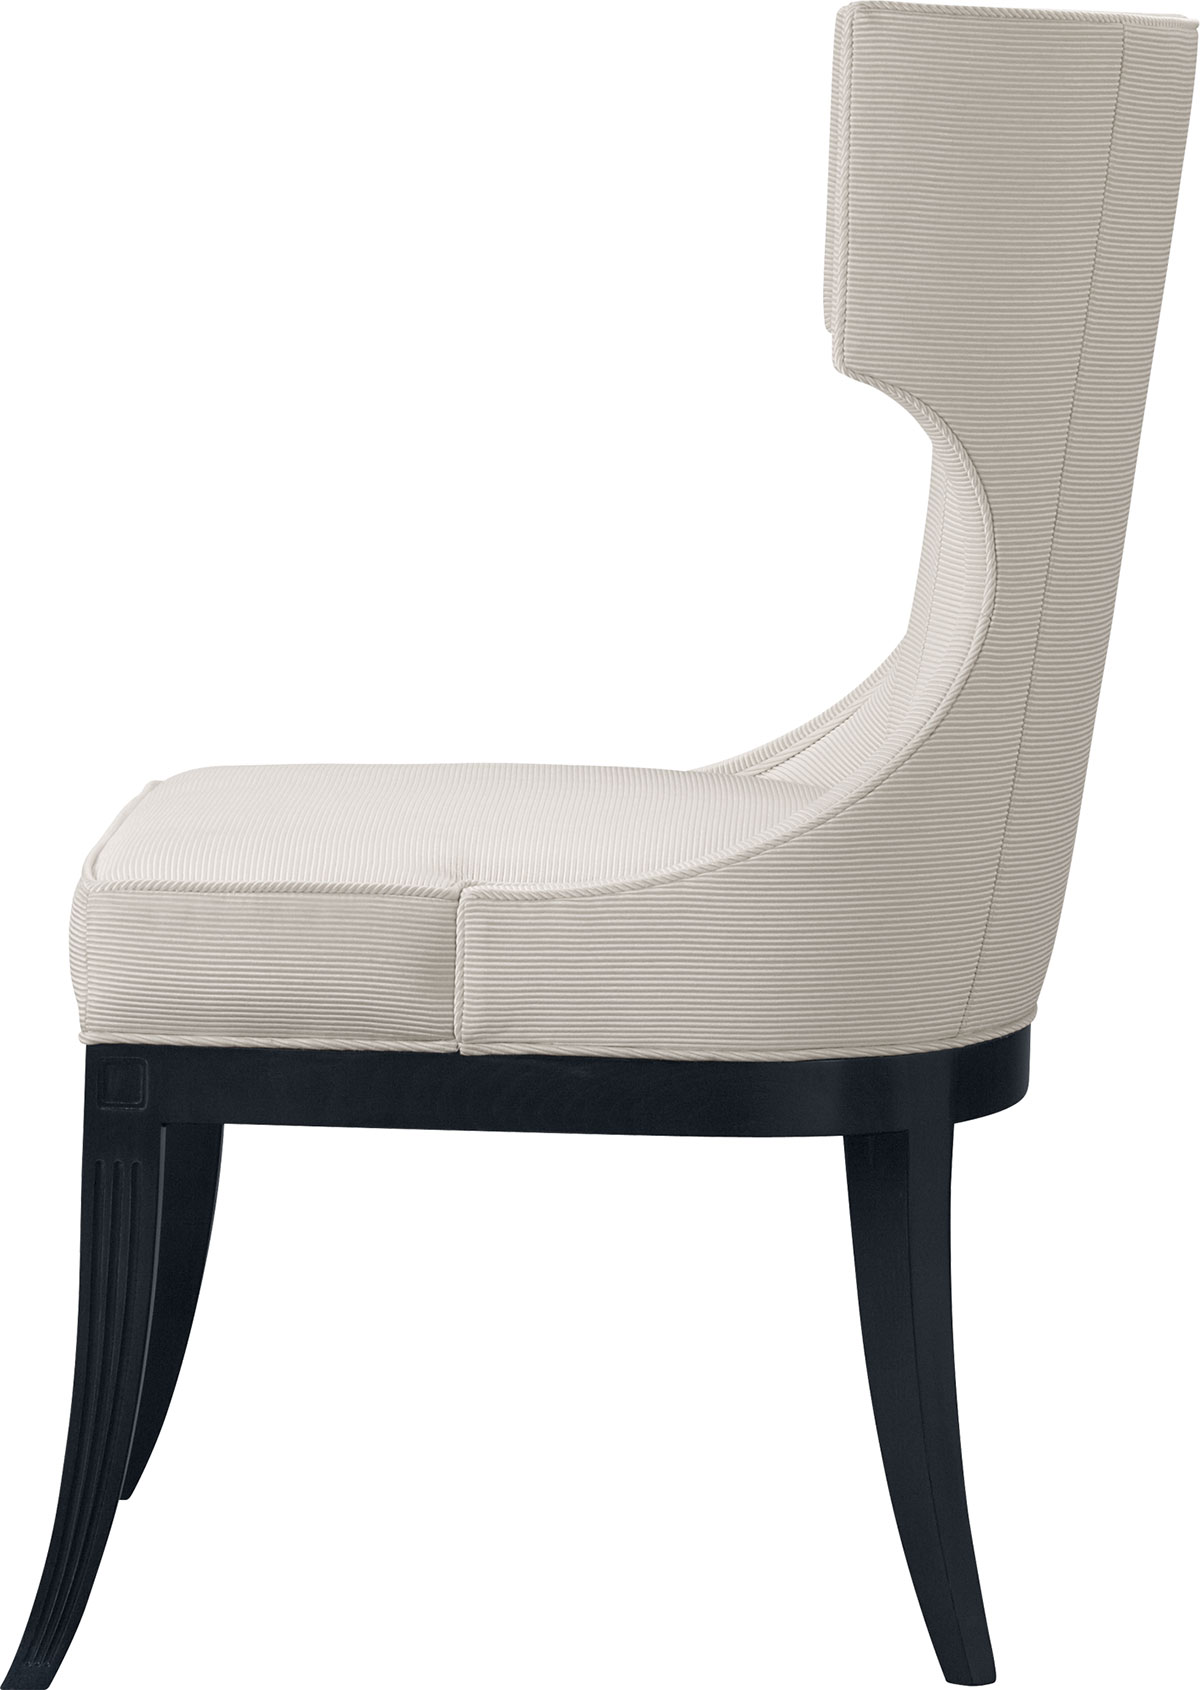 MARAT UPHOLSTERED DINING CHAIR